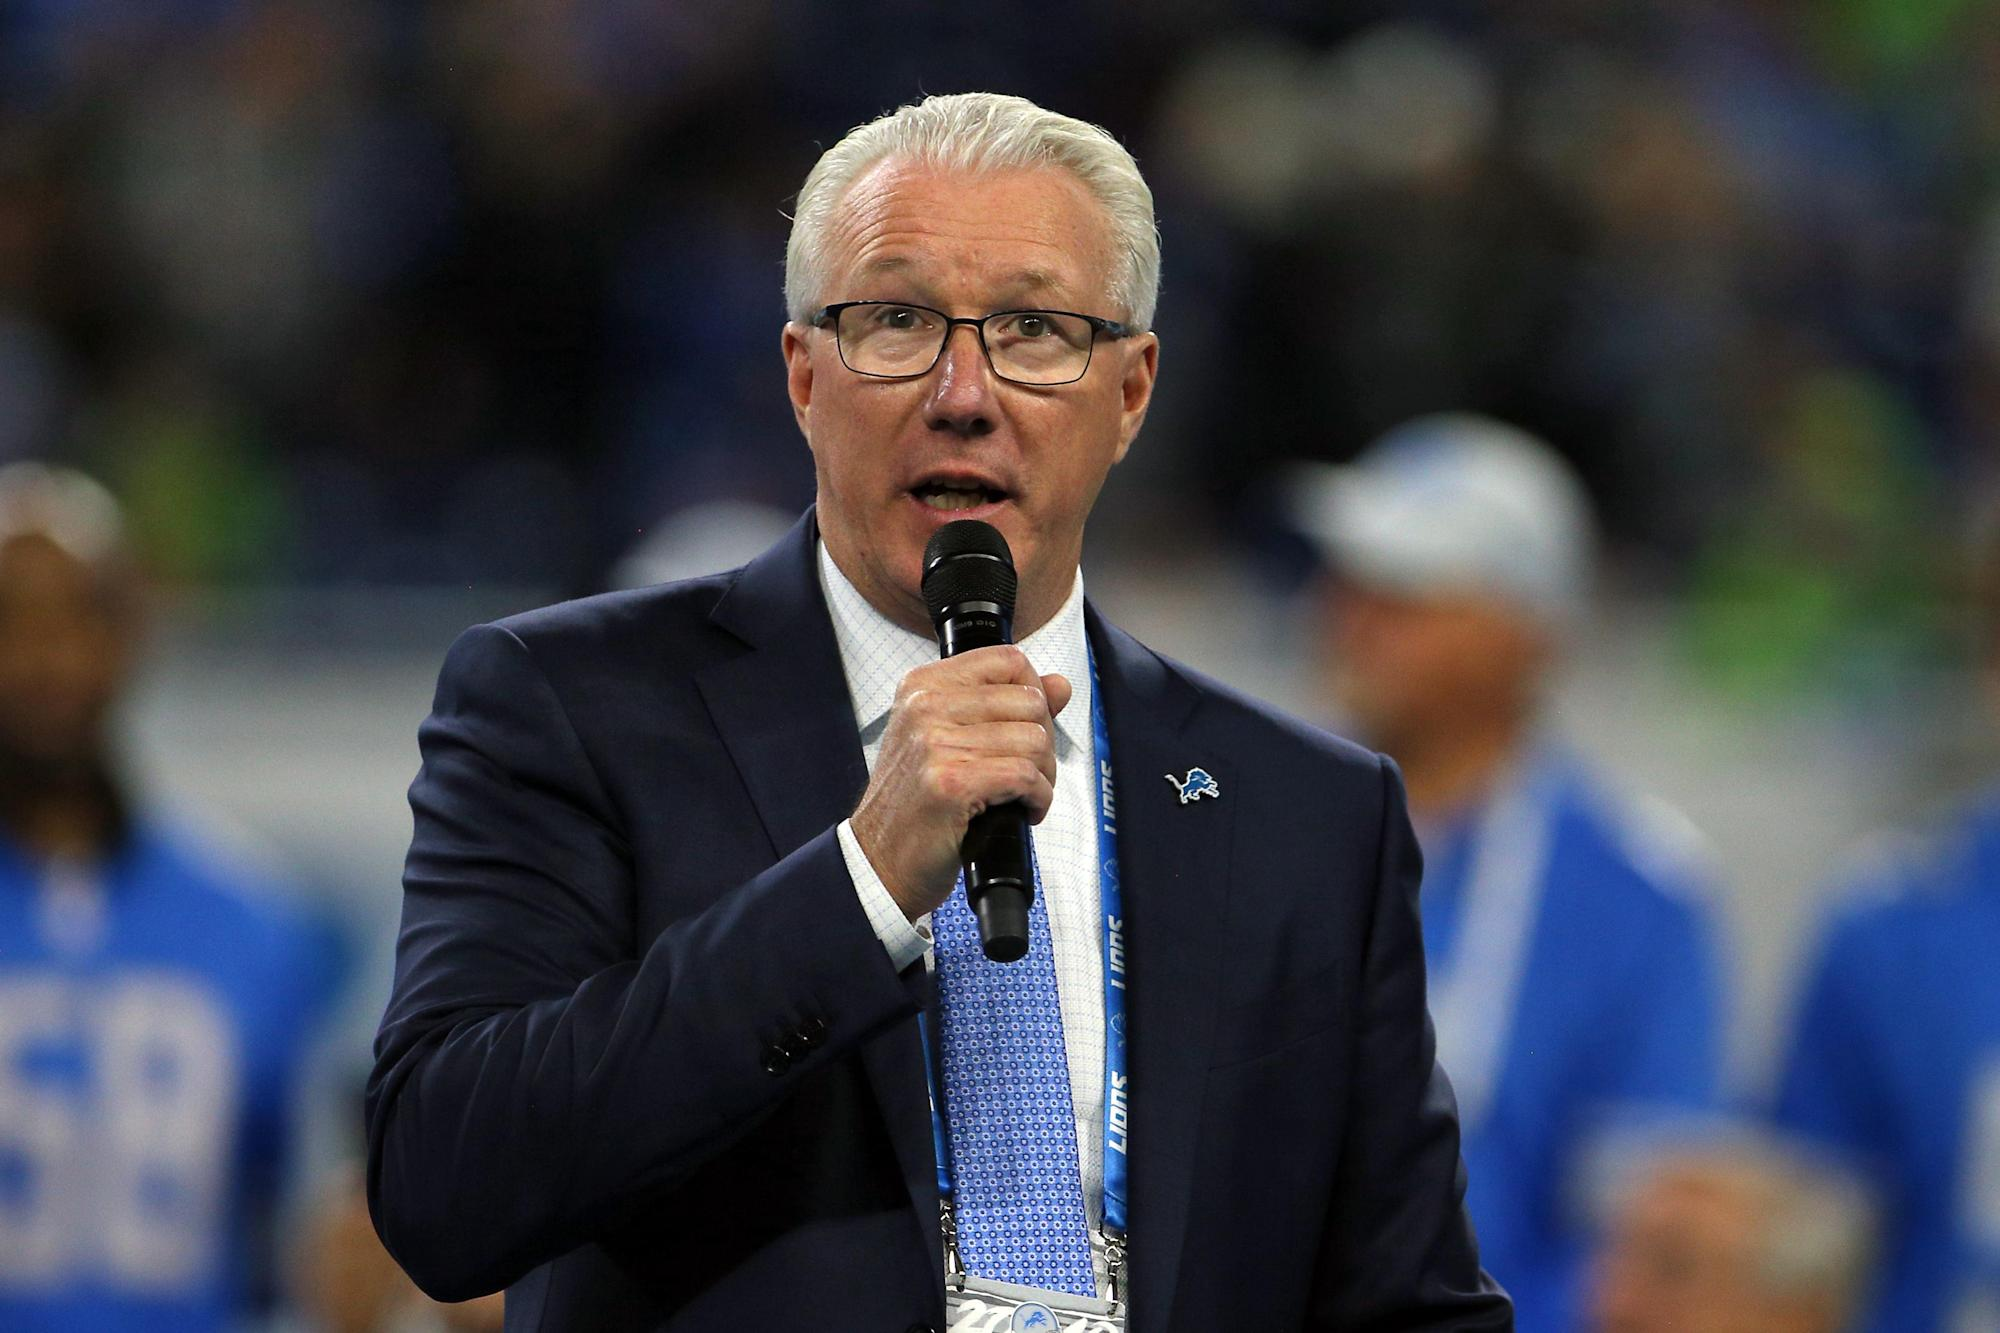 Lions, Tigers, Pistons executives sign letter objecting to Michigan voting restrictions